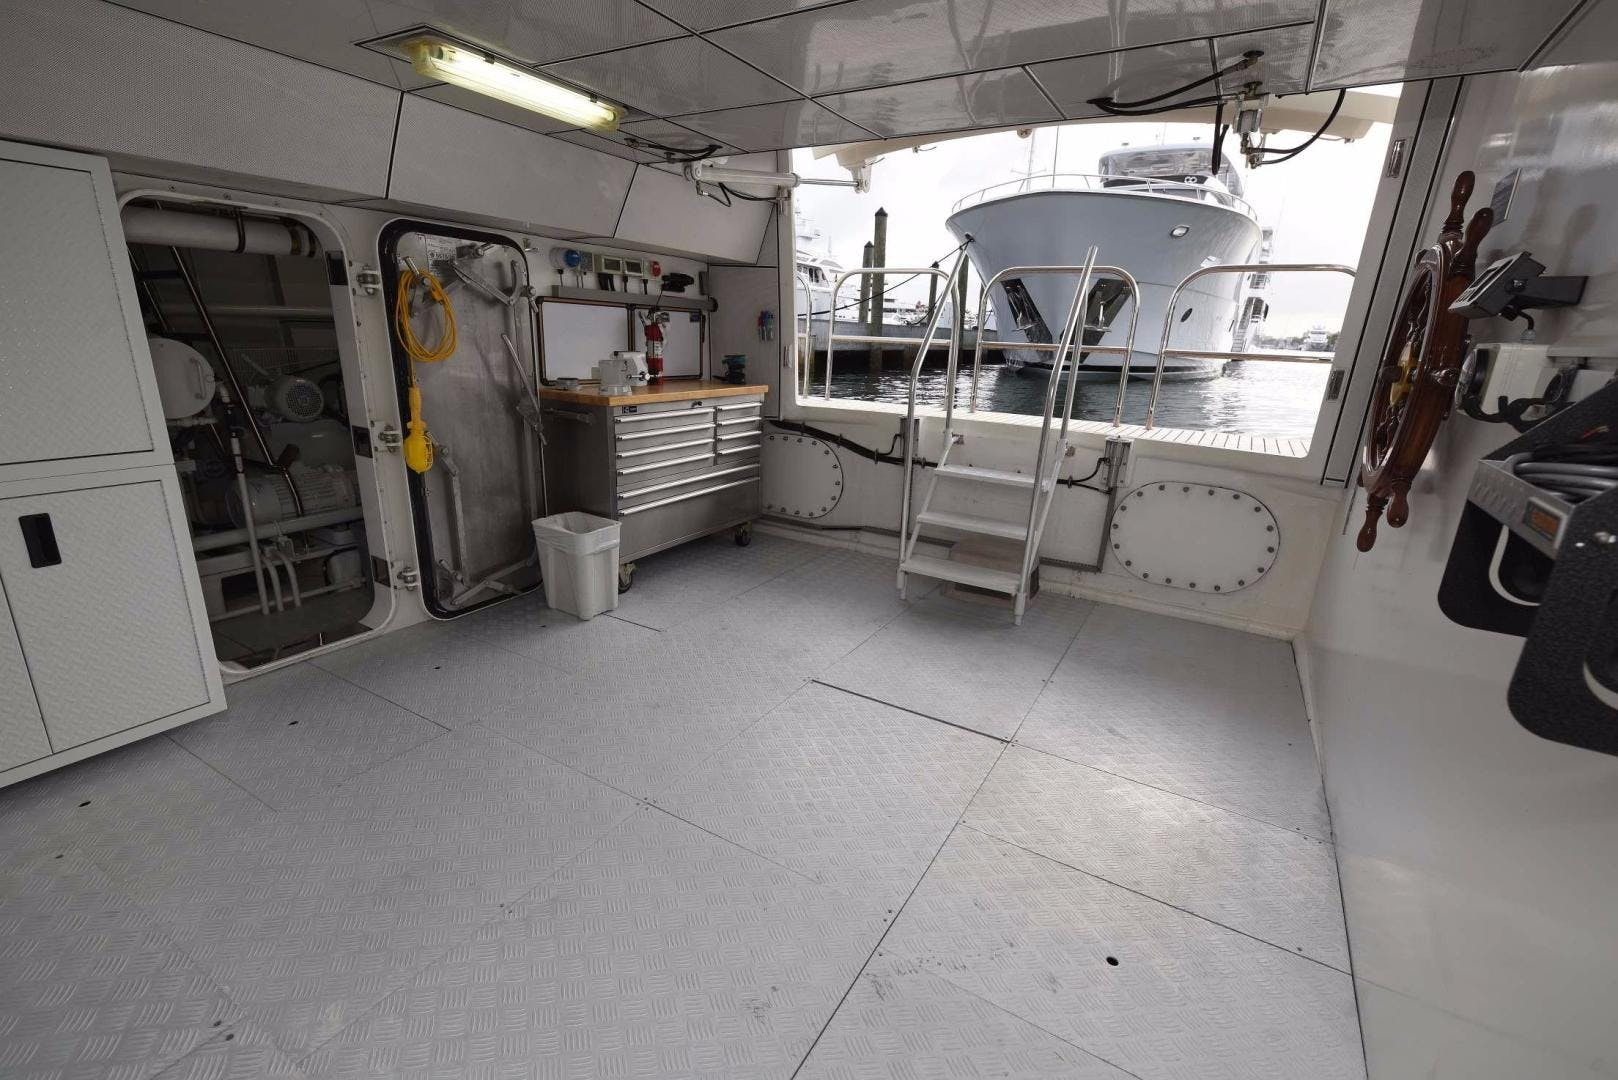 2010 IAG 127' Motor Yacht KIMBERLIE   Picture 7 of 53